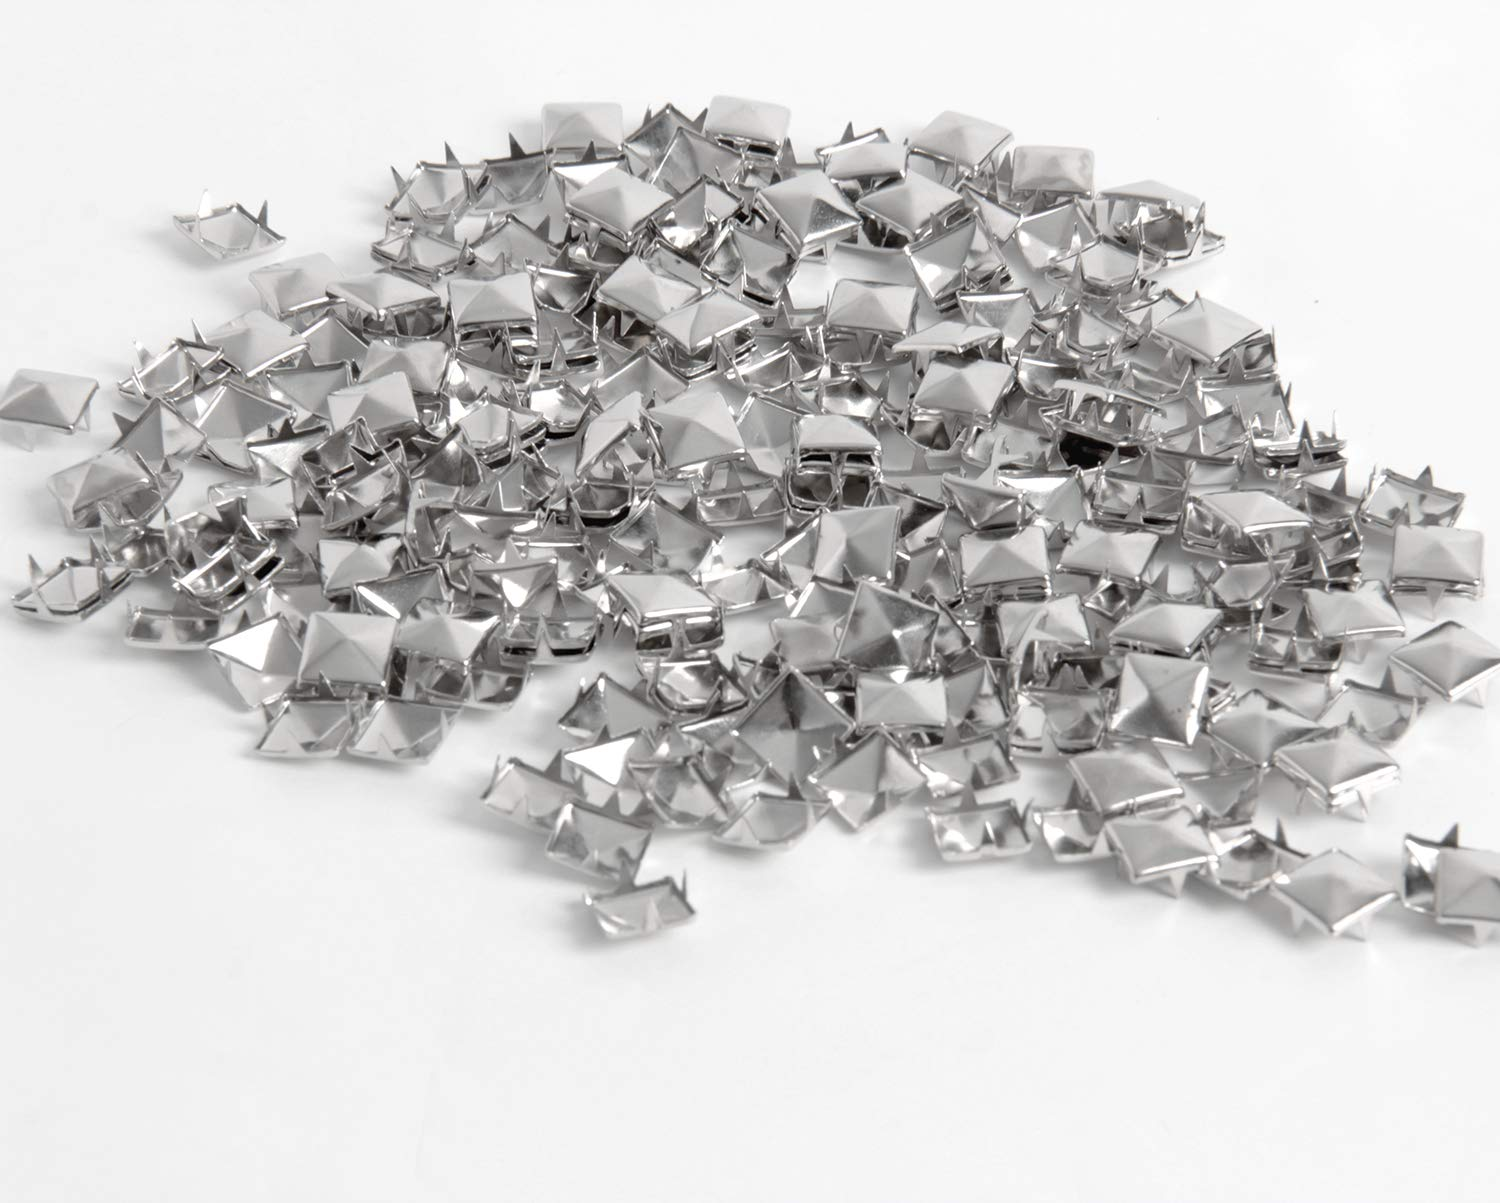 Happy Shop 400 Pieces Silver Square Stud Rivet Punk Spikes Spots Pyramid Studs for Leathercraft,DIY